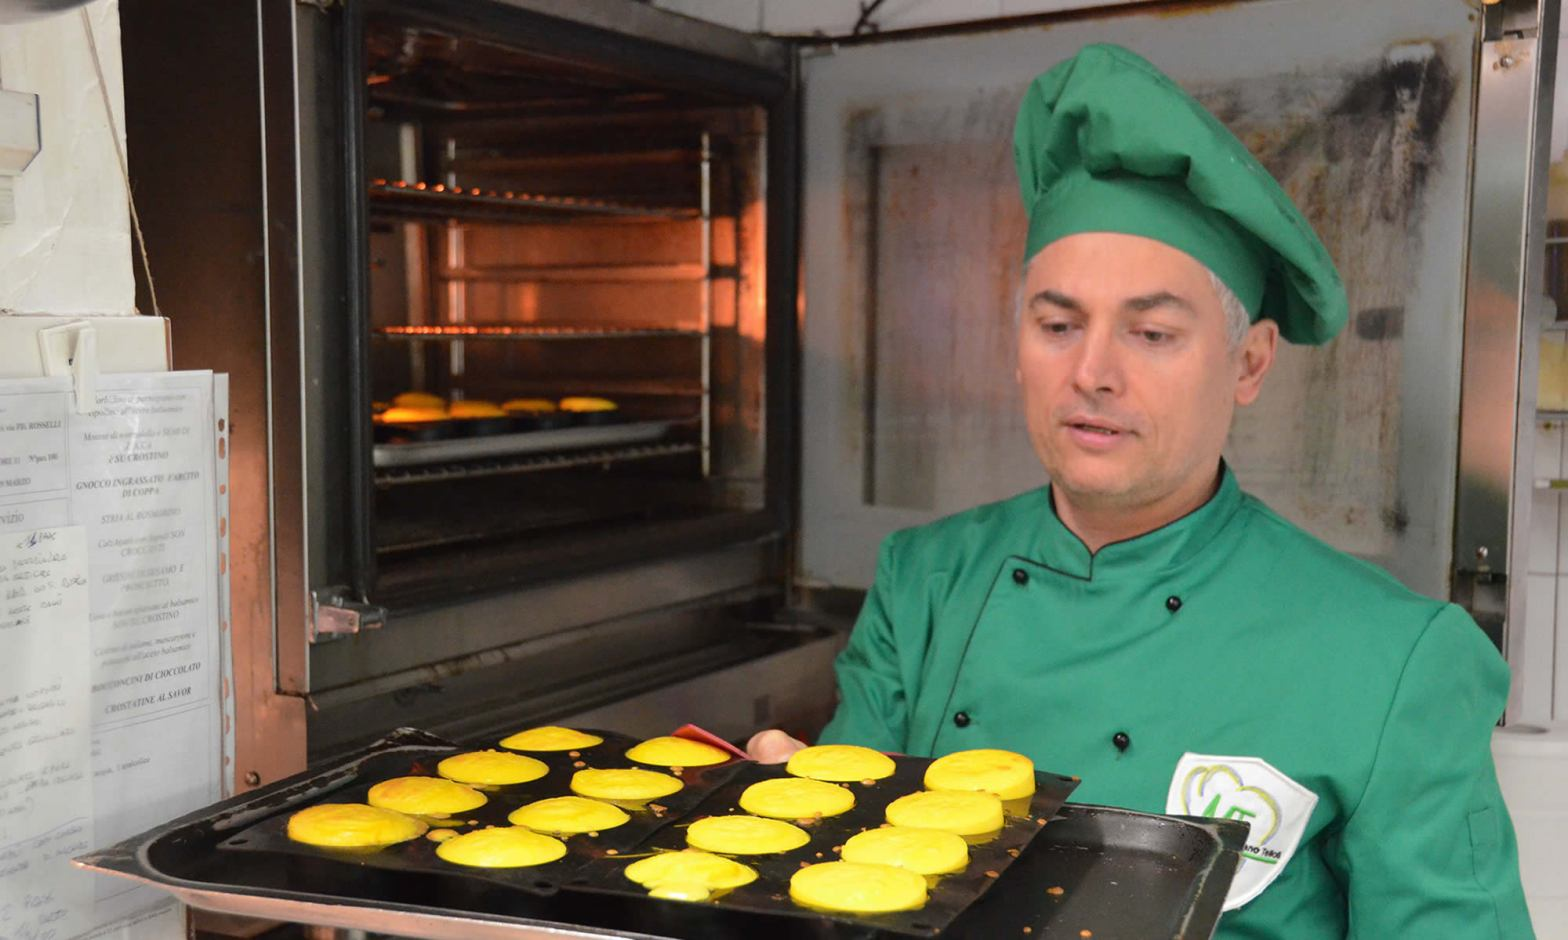 A chef, wearing a green hat and uniform, holds a tray of bright yellow souffles, preparing to put them in an oven.